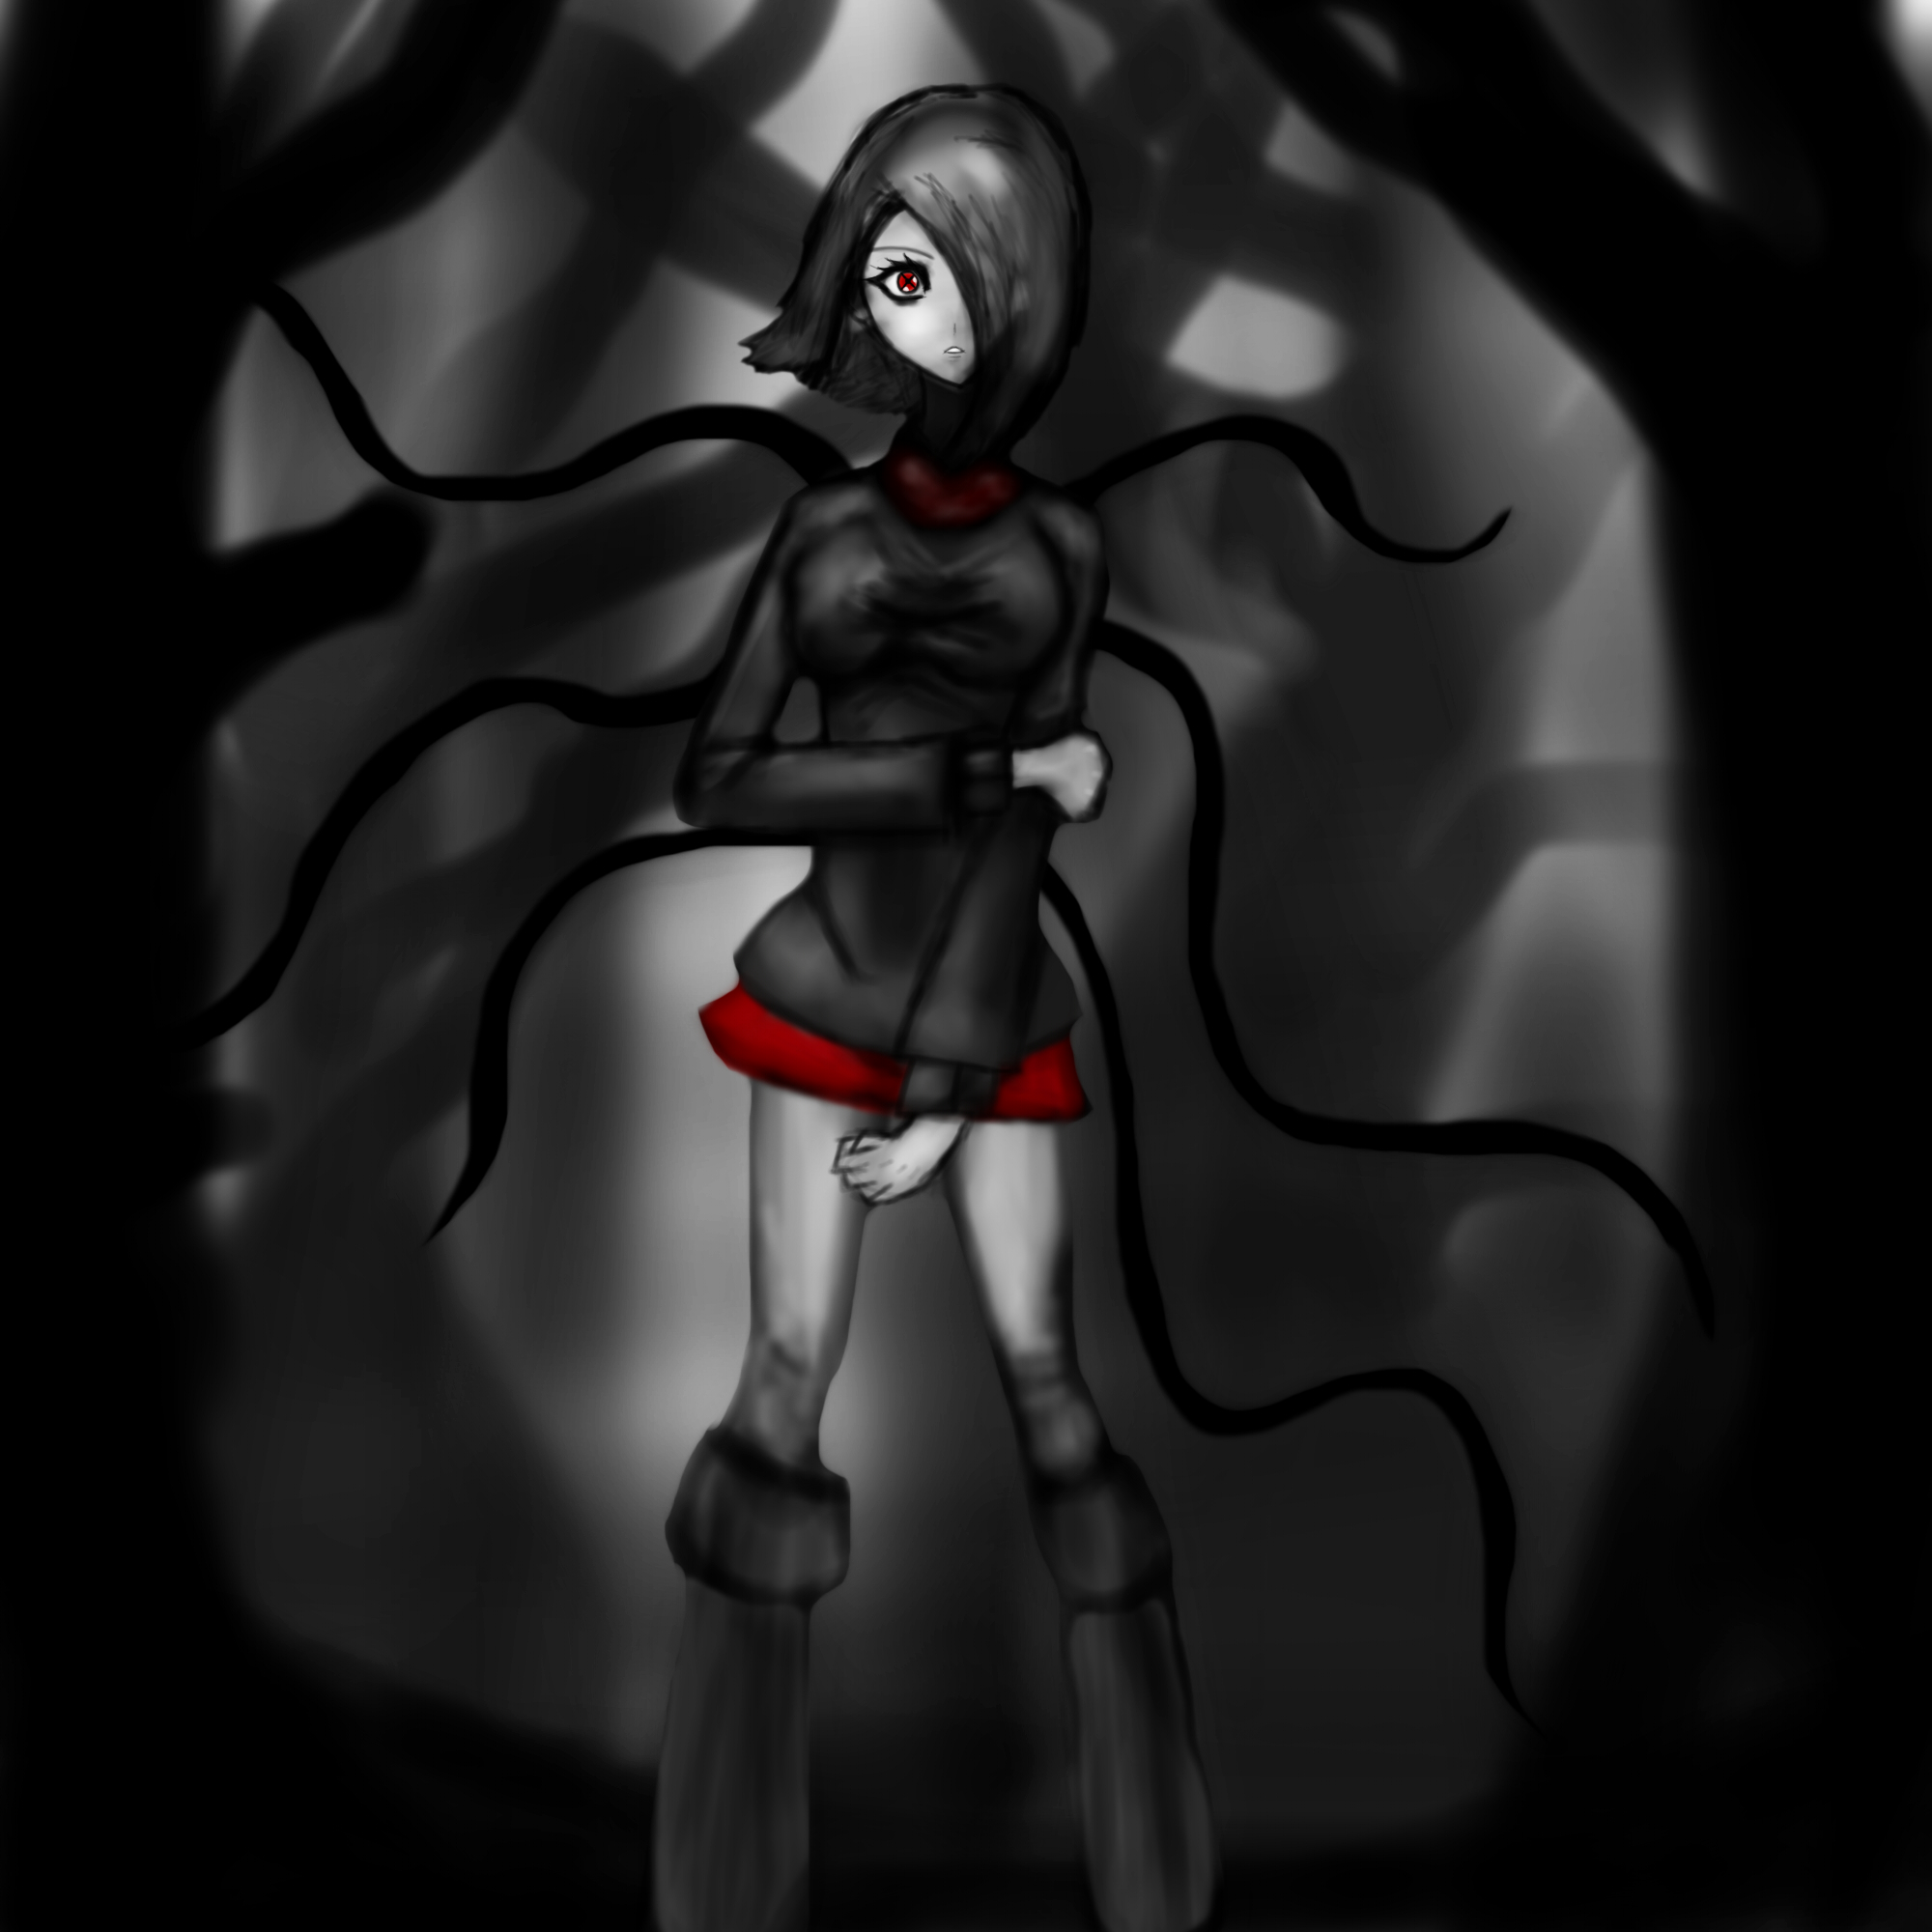 Slender girl by bologen111 on Newgrounds